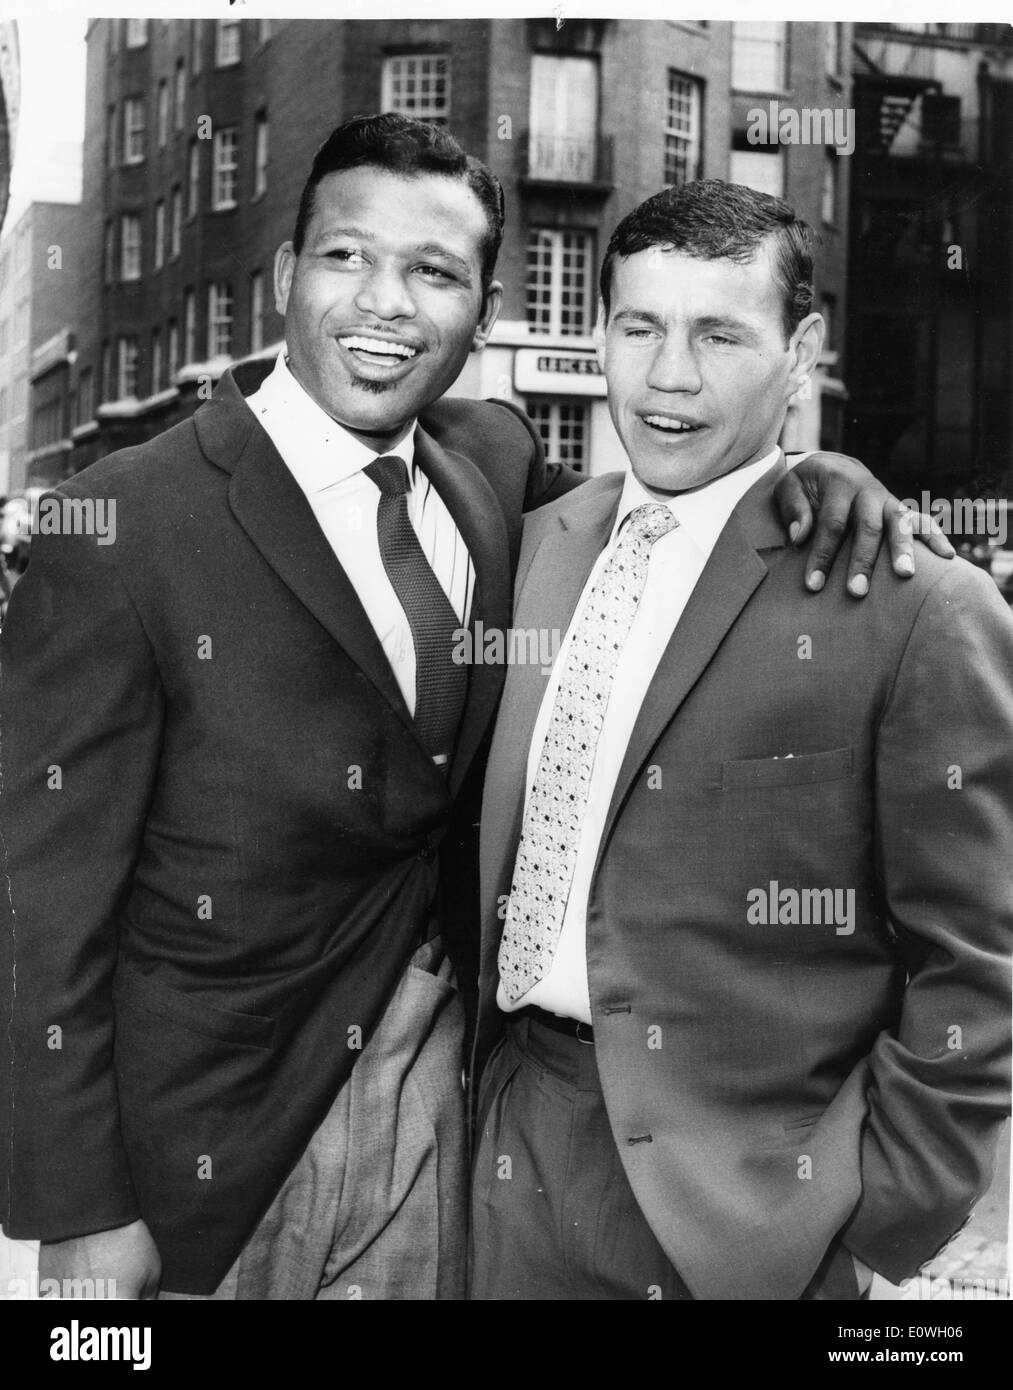 Sugar Ray Robinson and Terry Downes before their match at Wembley - Stock Image